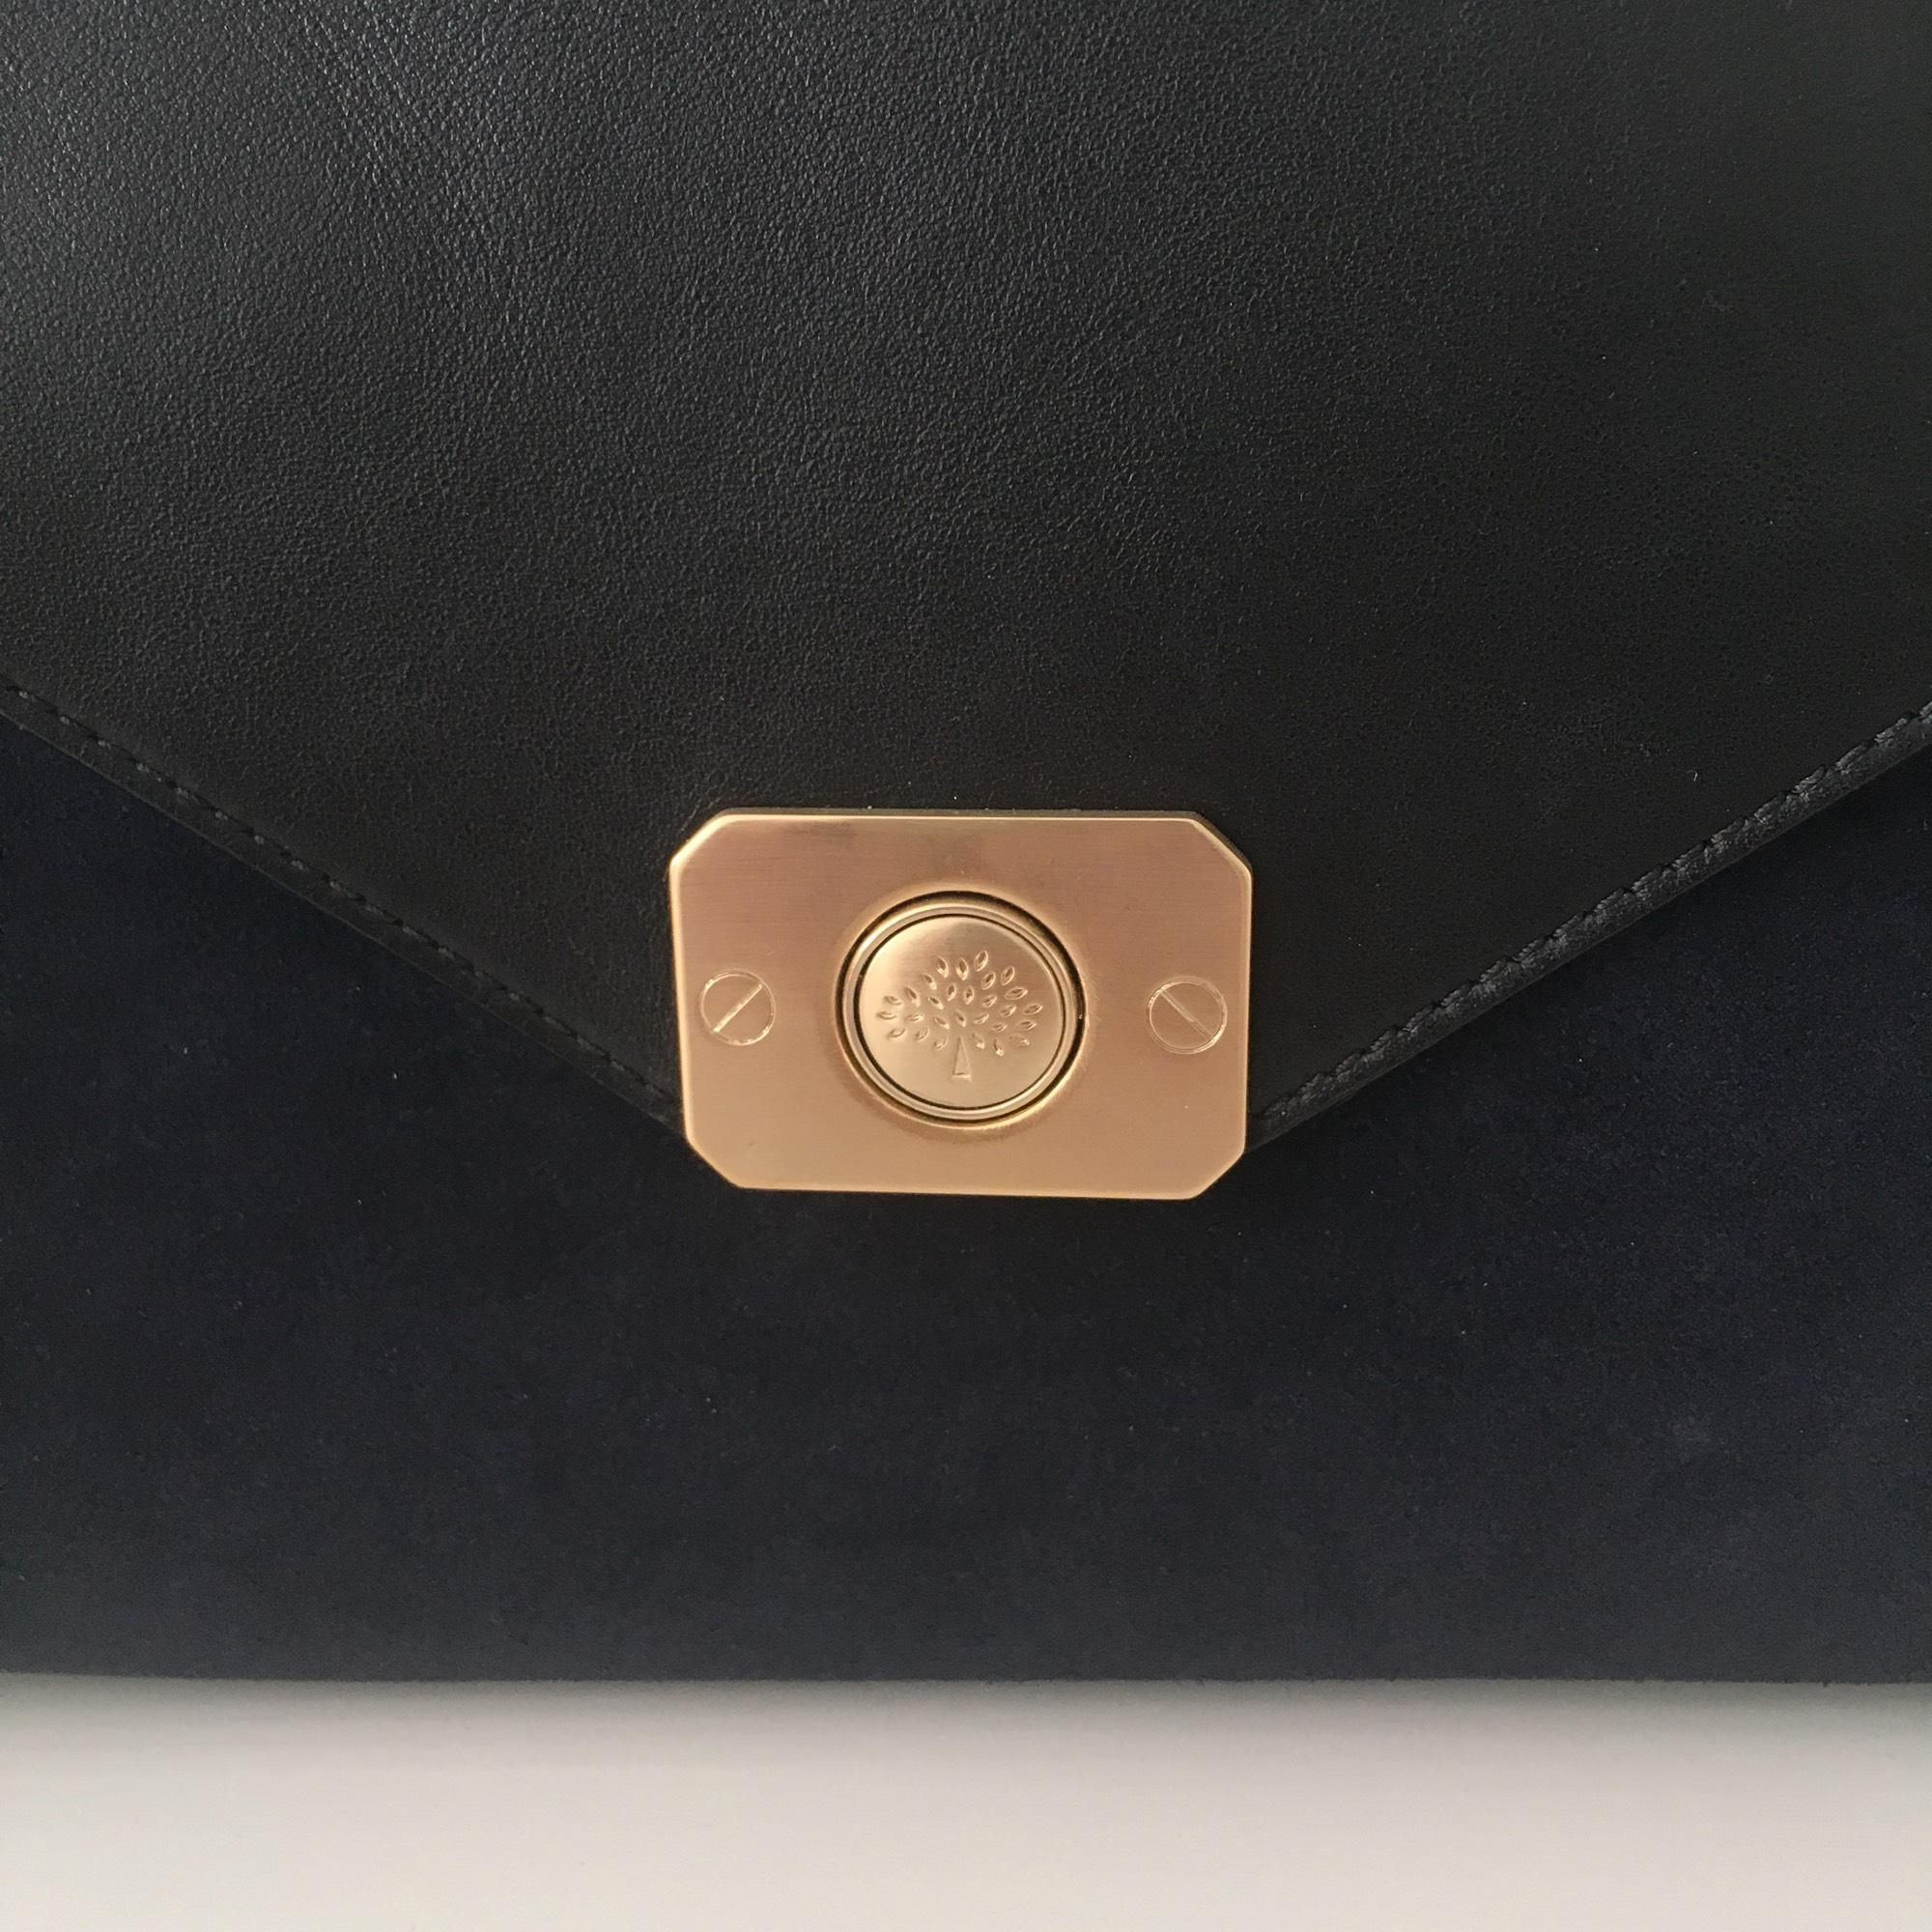 cb94f4763d ... discount code for mulberry cross body bag. 123456 3a0f7 b5204